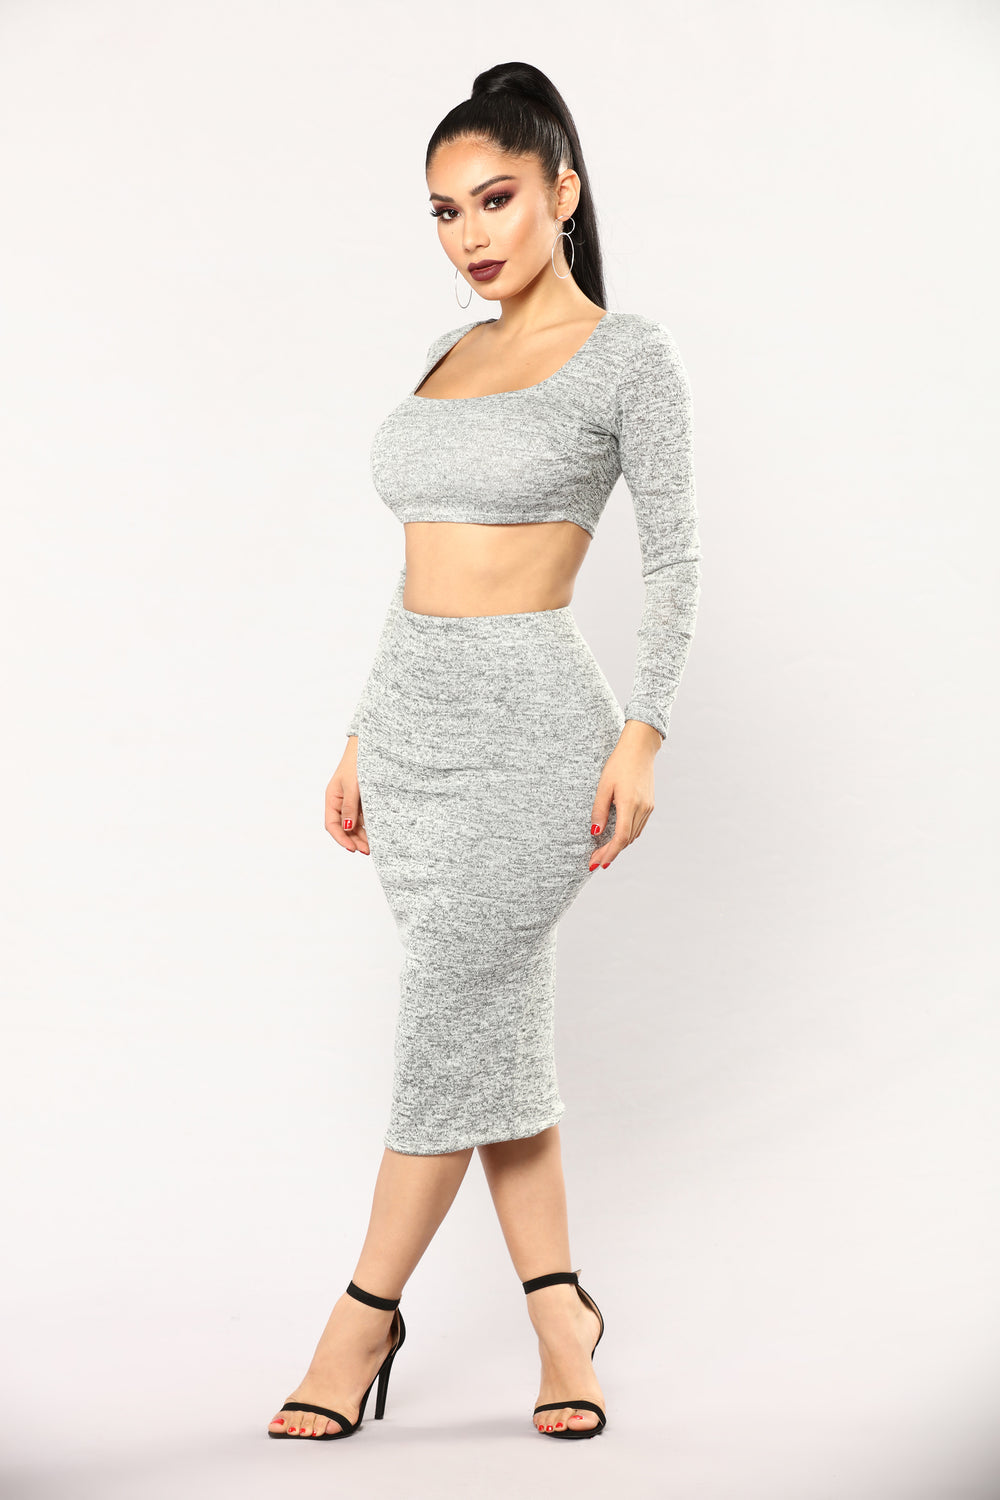 Date With Kye Skirt Set - Heather Grey